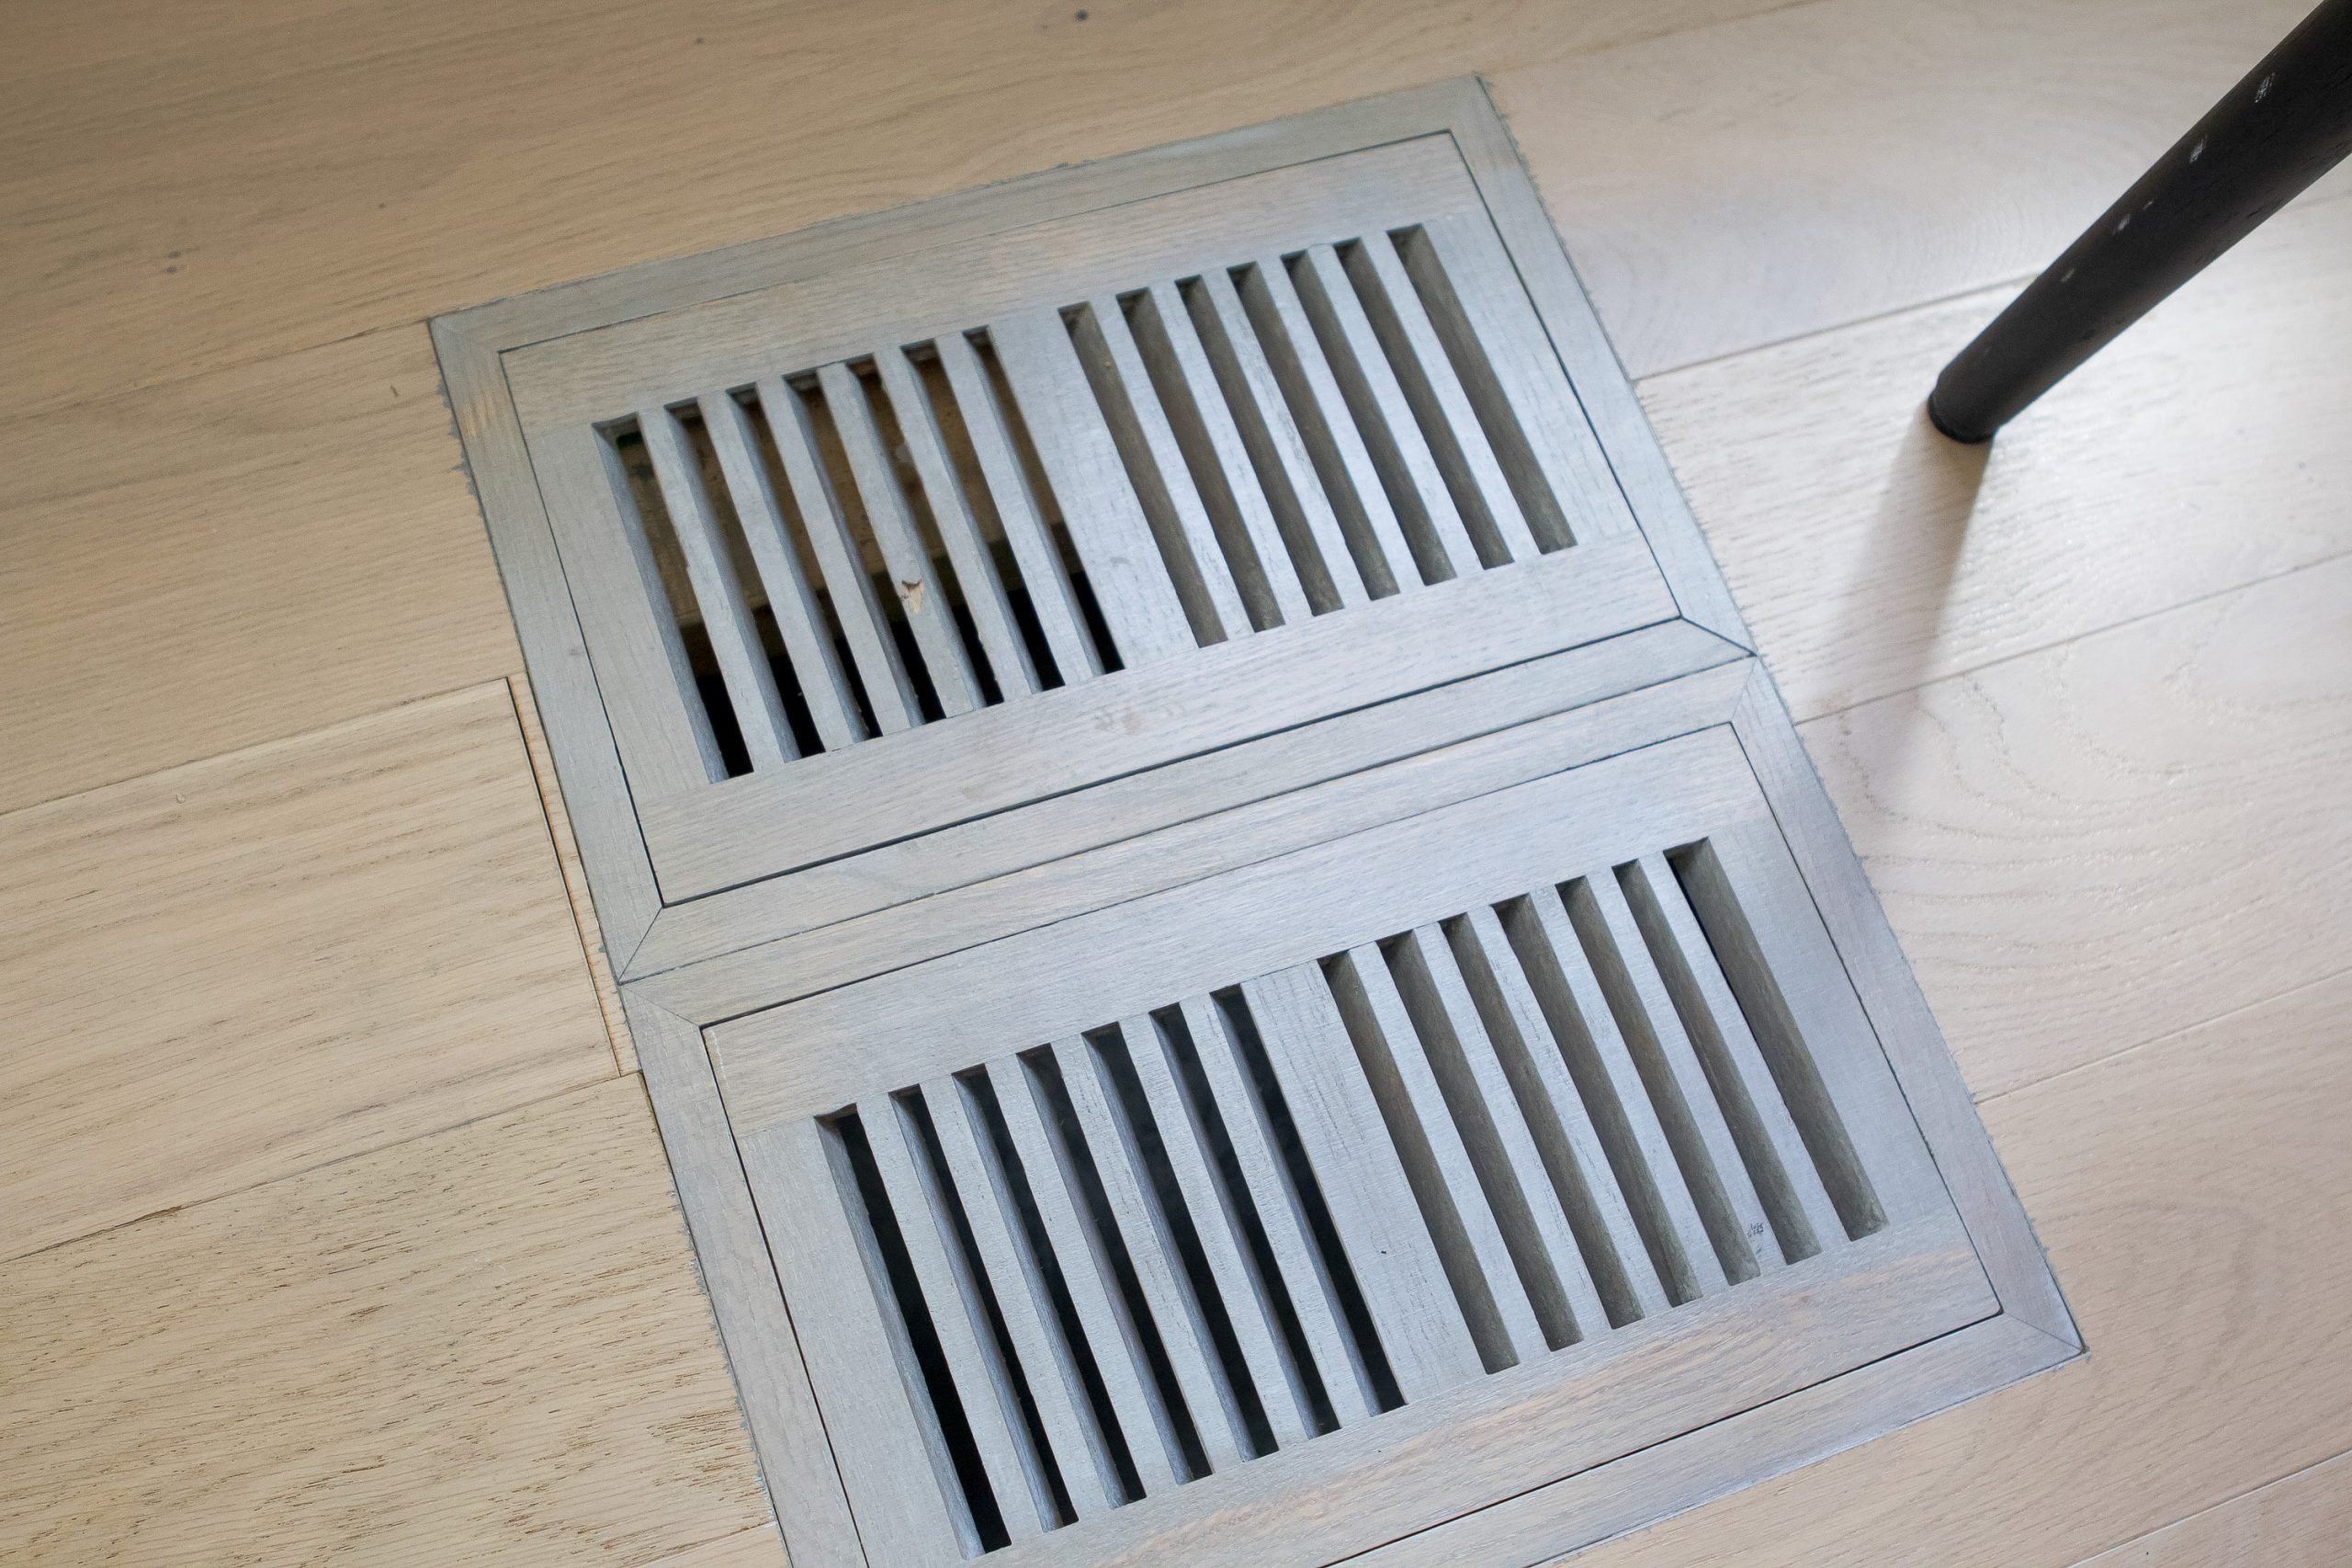 Fixing our wood floor vent with super glue